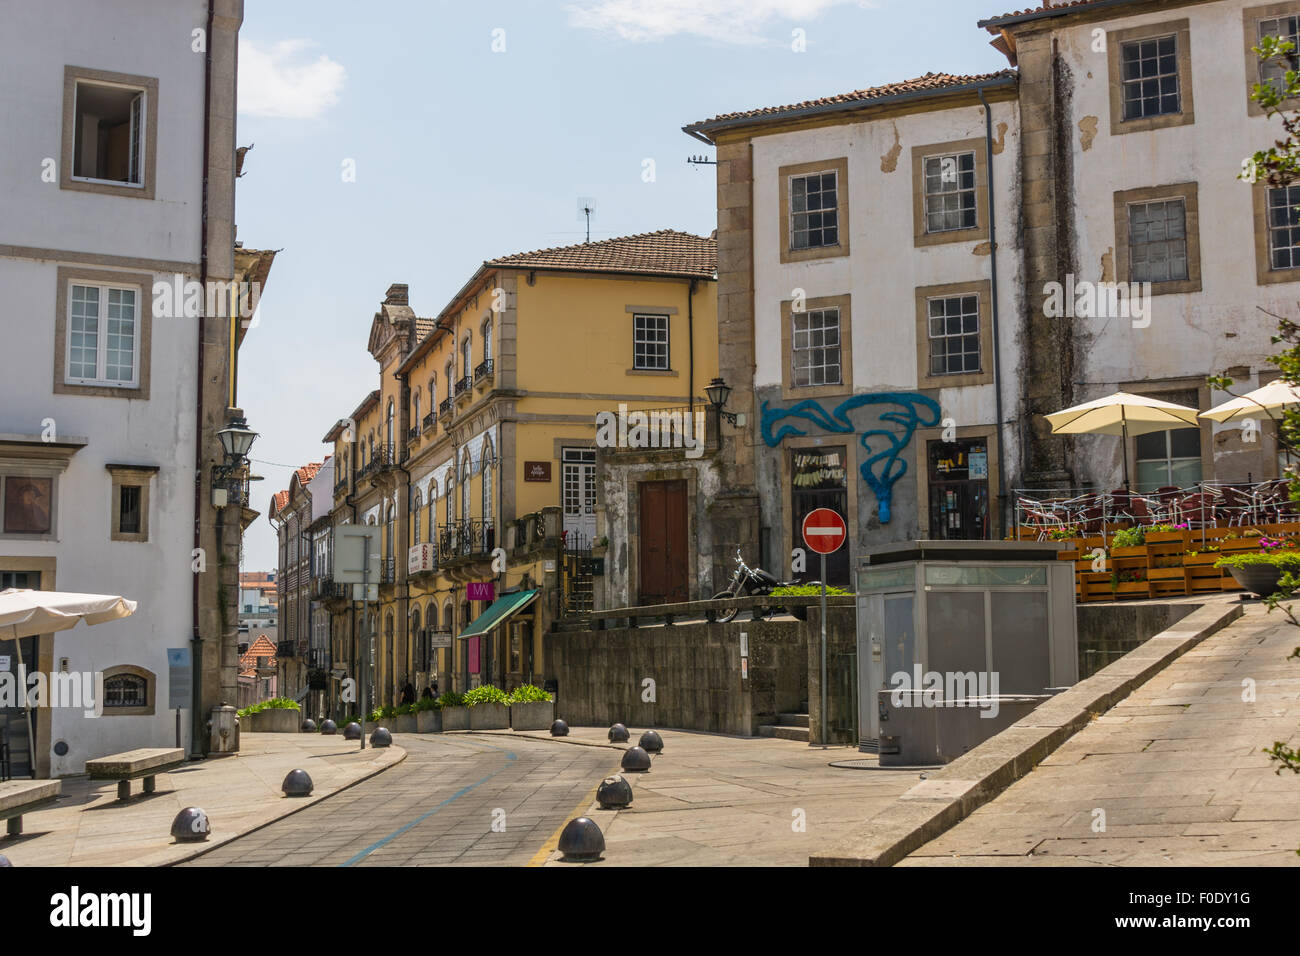 Paça de D Duarte, Viseu, Portugal: Square with shops and houses to the rear of cathedral in historic town centre - Stock Image